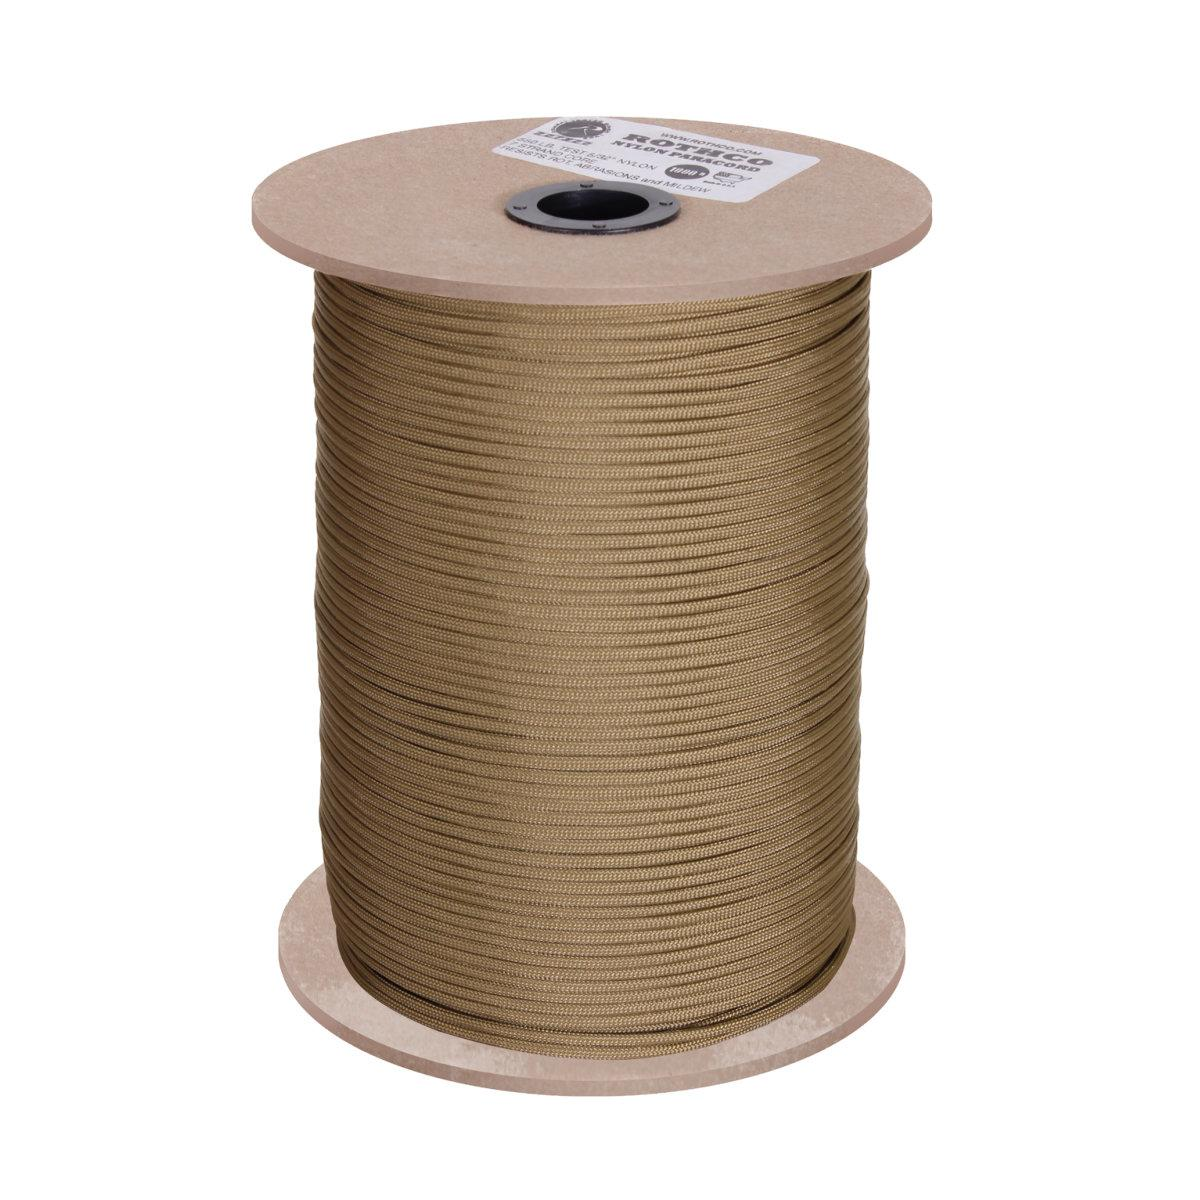 Made in the United States 550 Paracord for Paracord Crafts 1000 Foot Spool Digital Viper